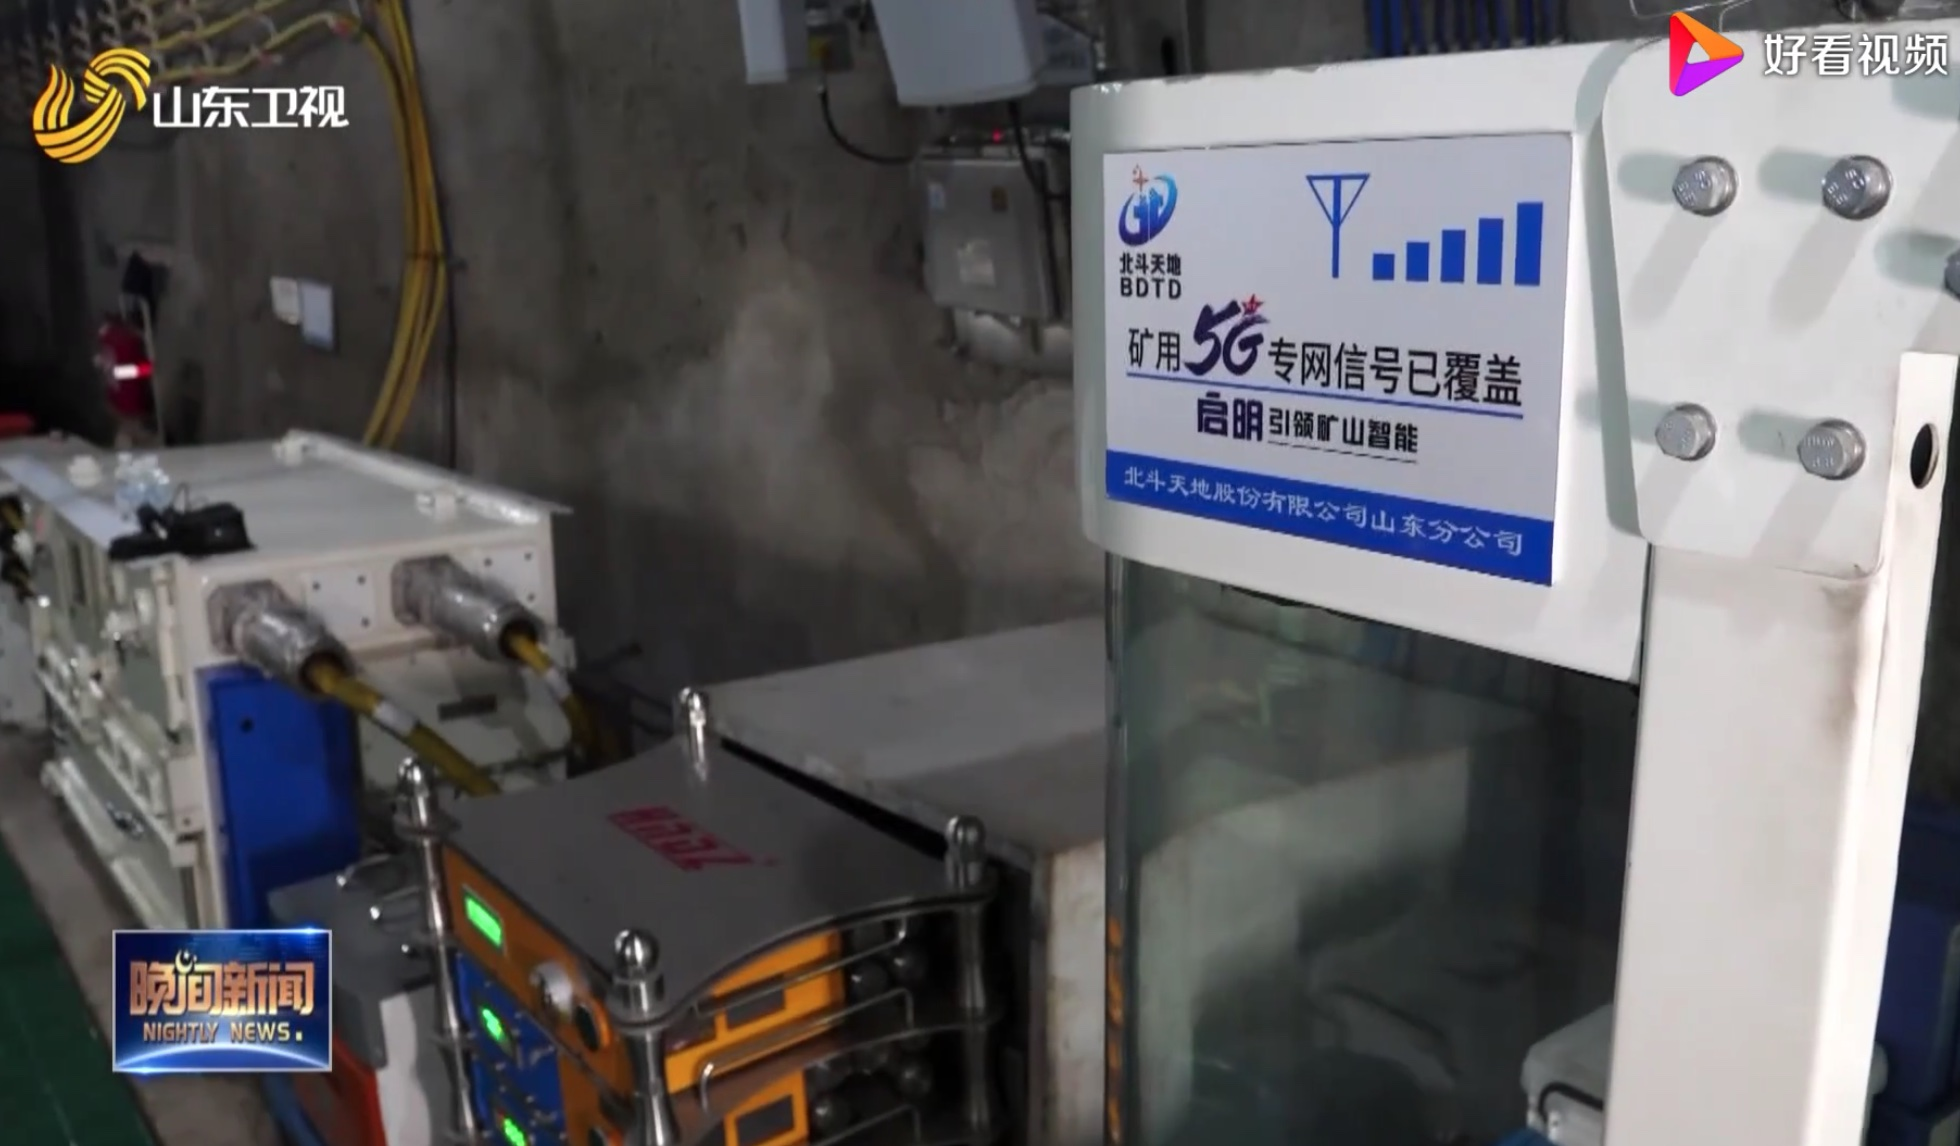 China's first mining 5G network system in operation with less than 20 milliseconds latency-CnTechPost